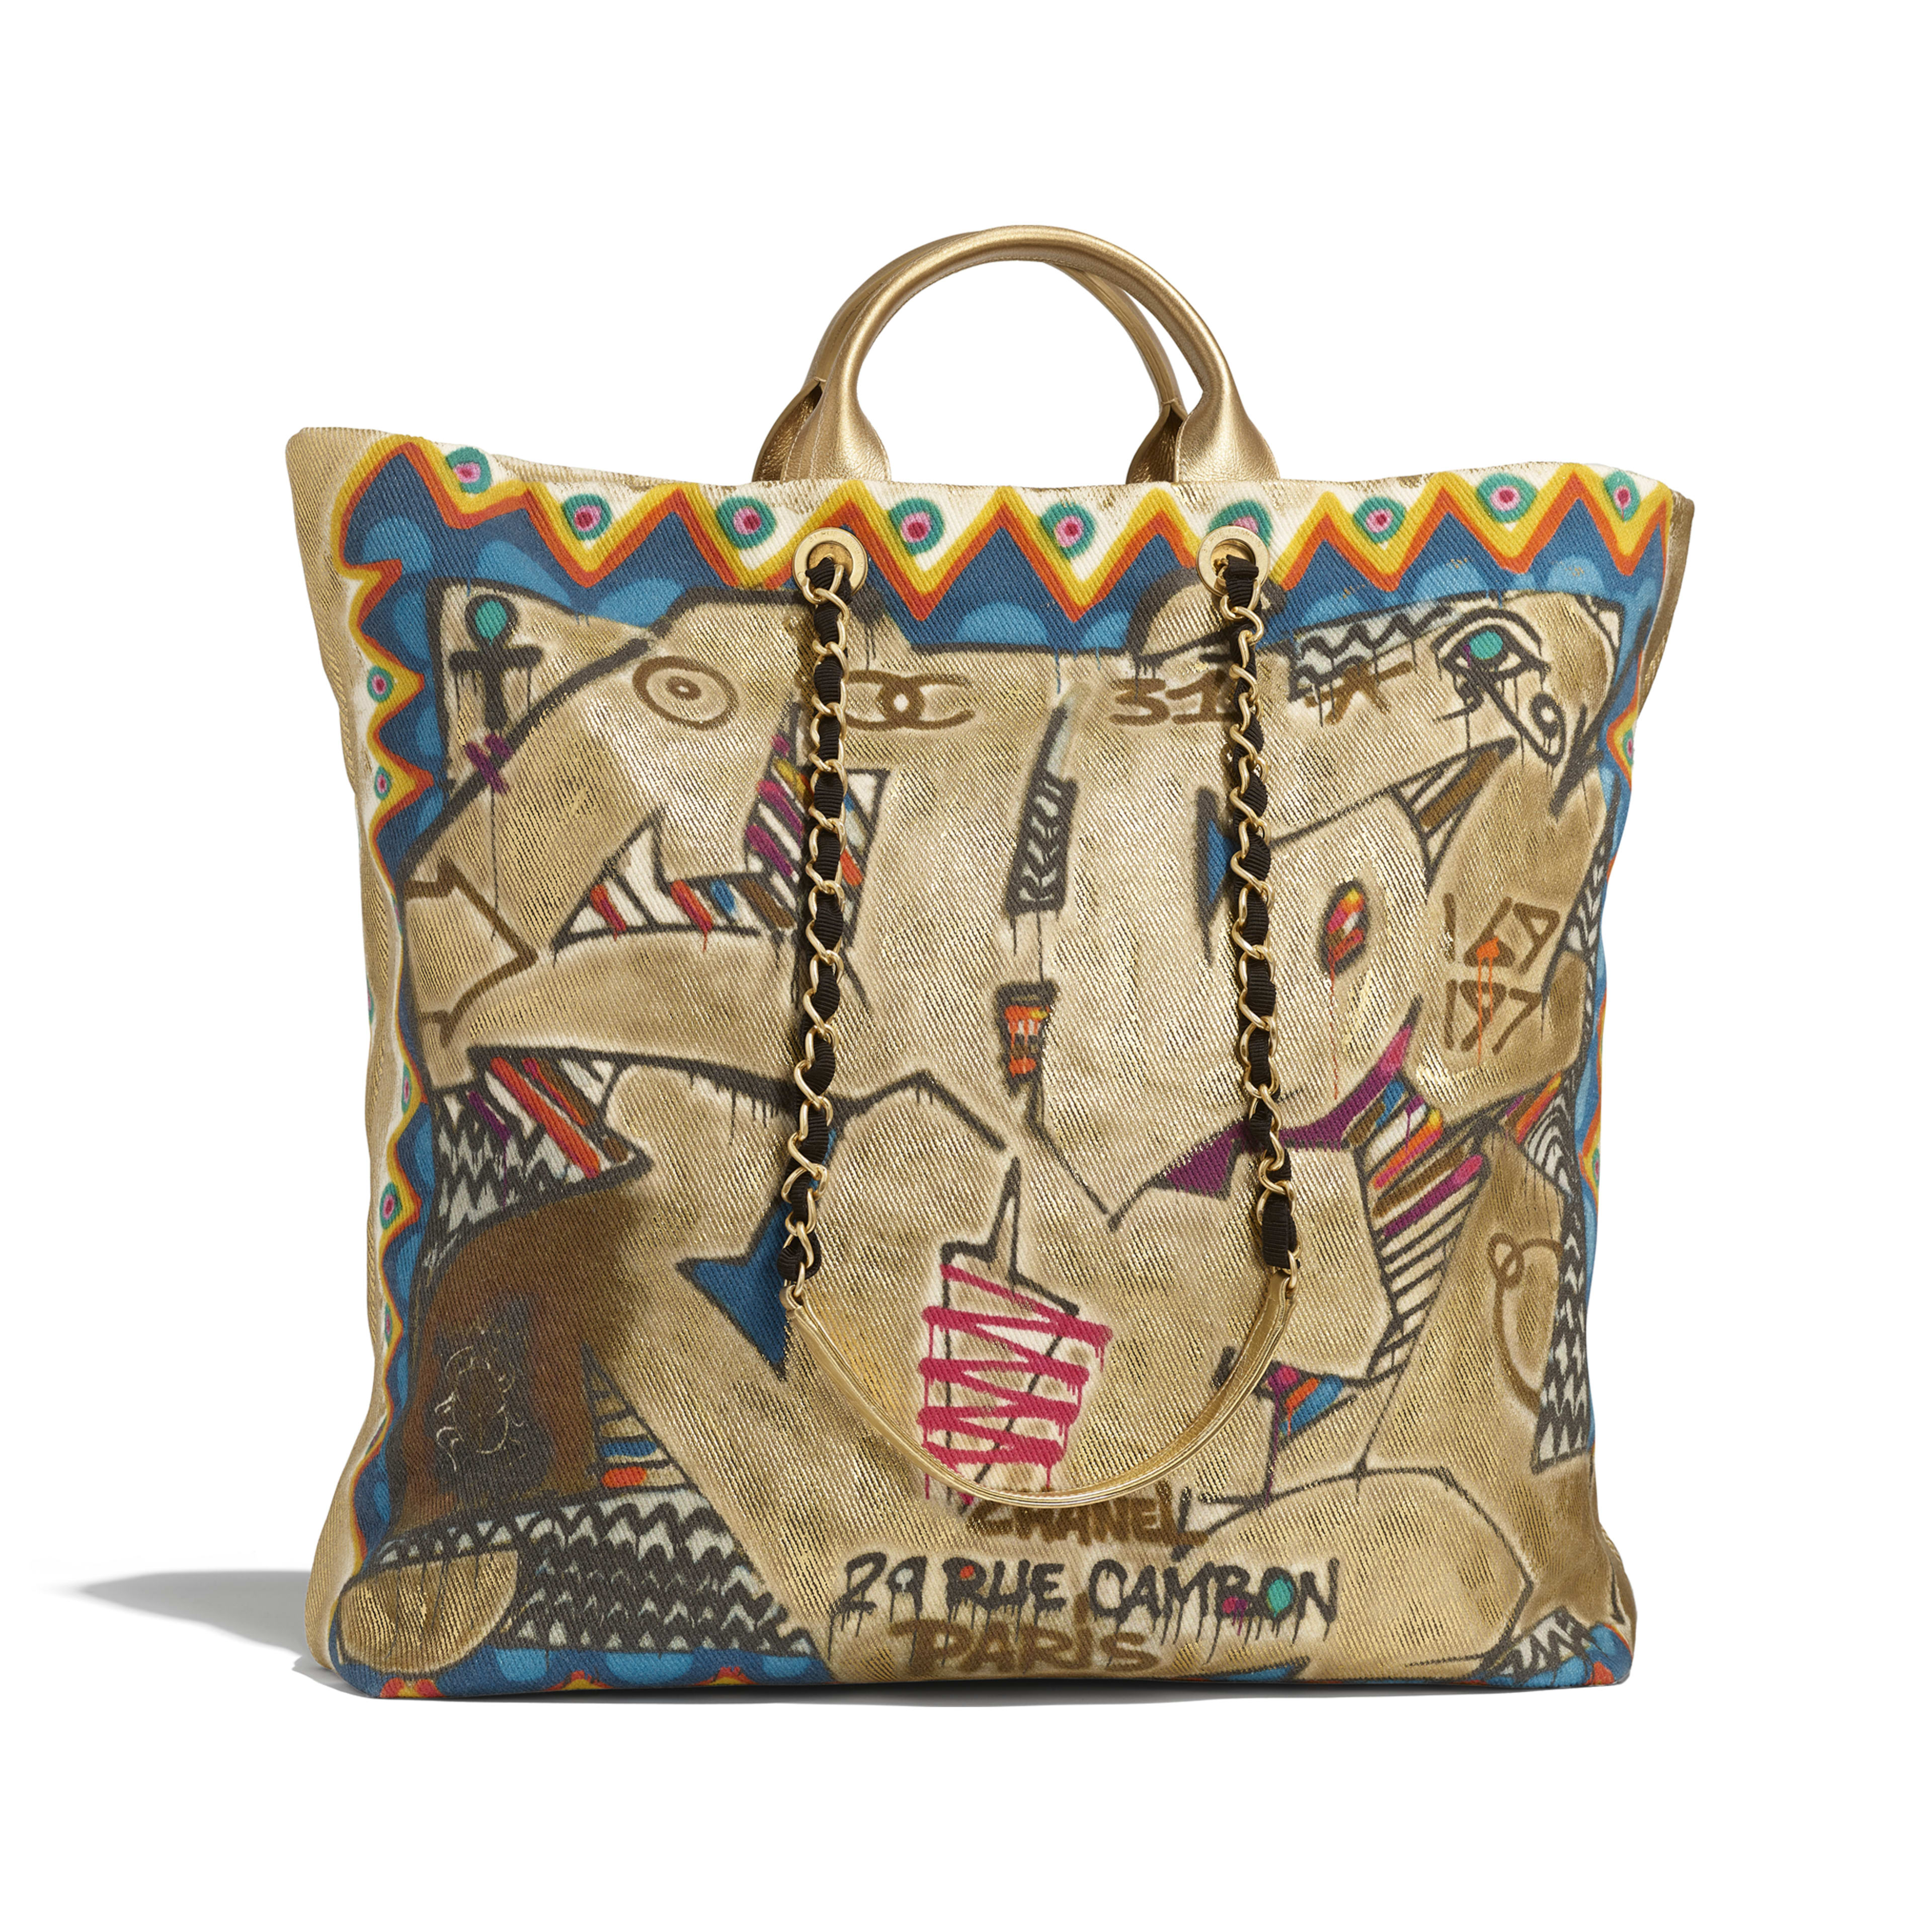 Maxi Shopping Bag - Multicolor - Calfskin, Cotton & Gold-Tone Metal - Alternative view - see full sized version